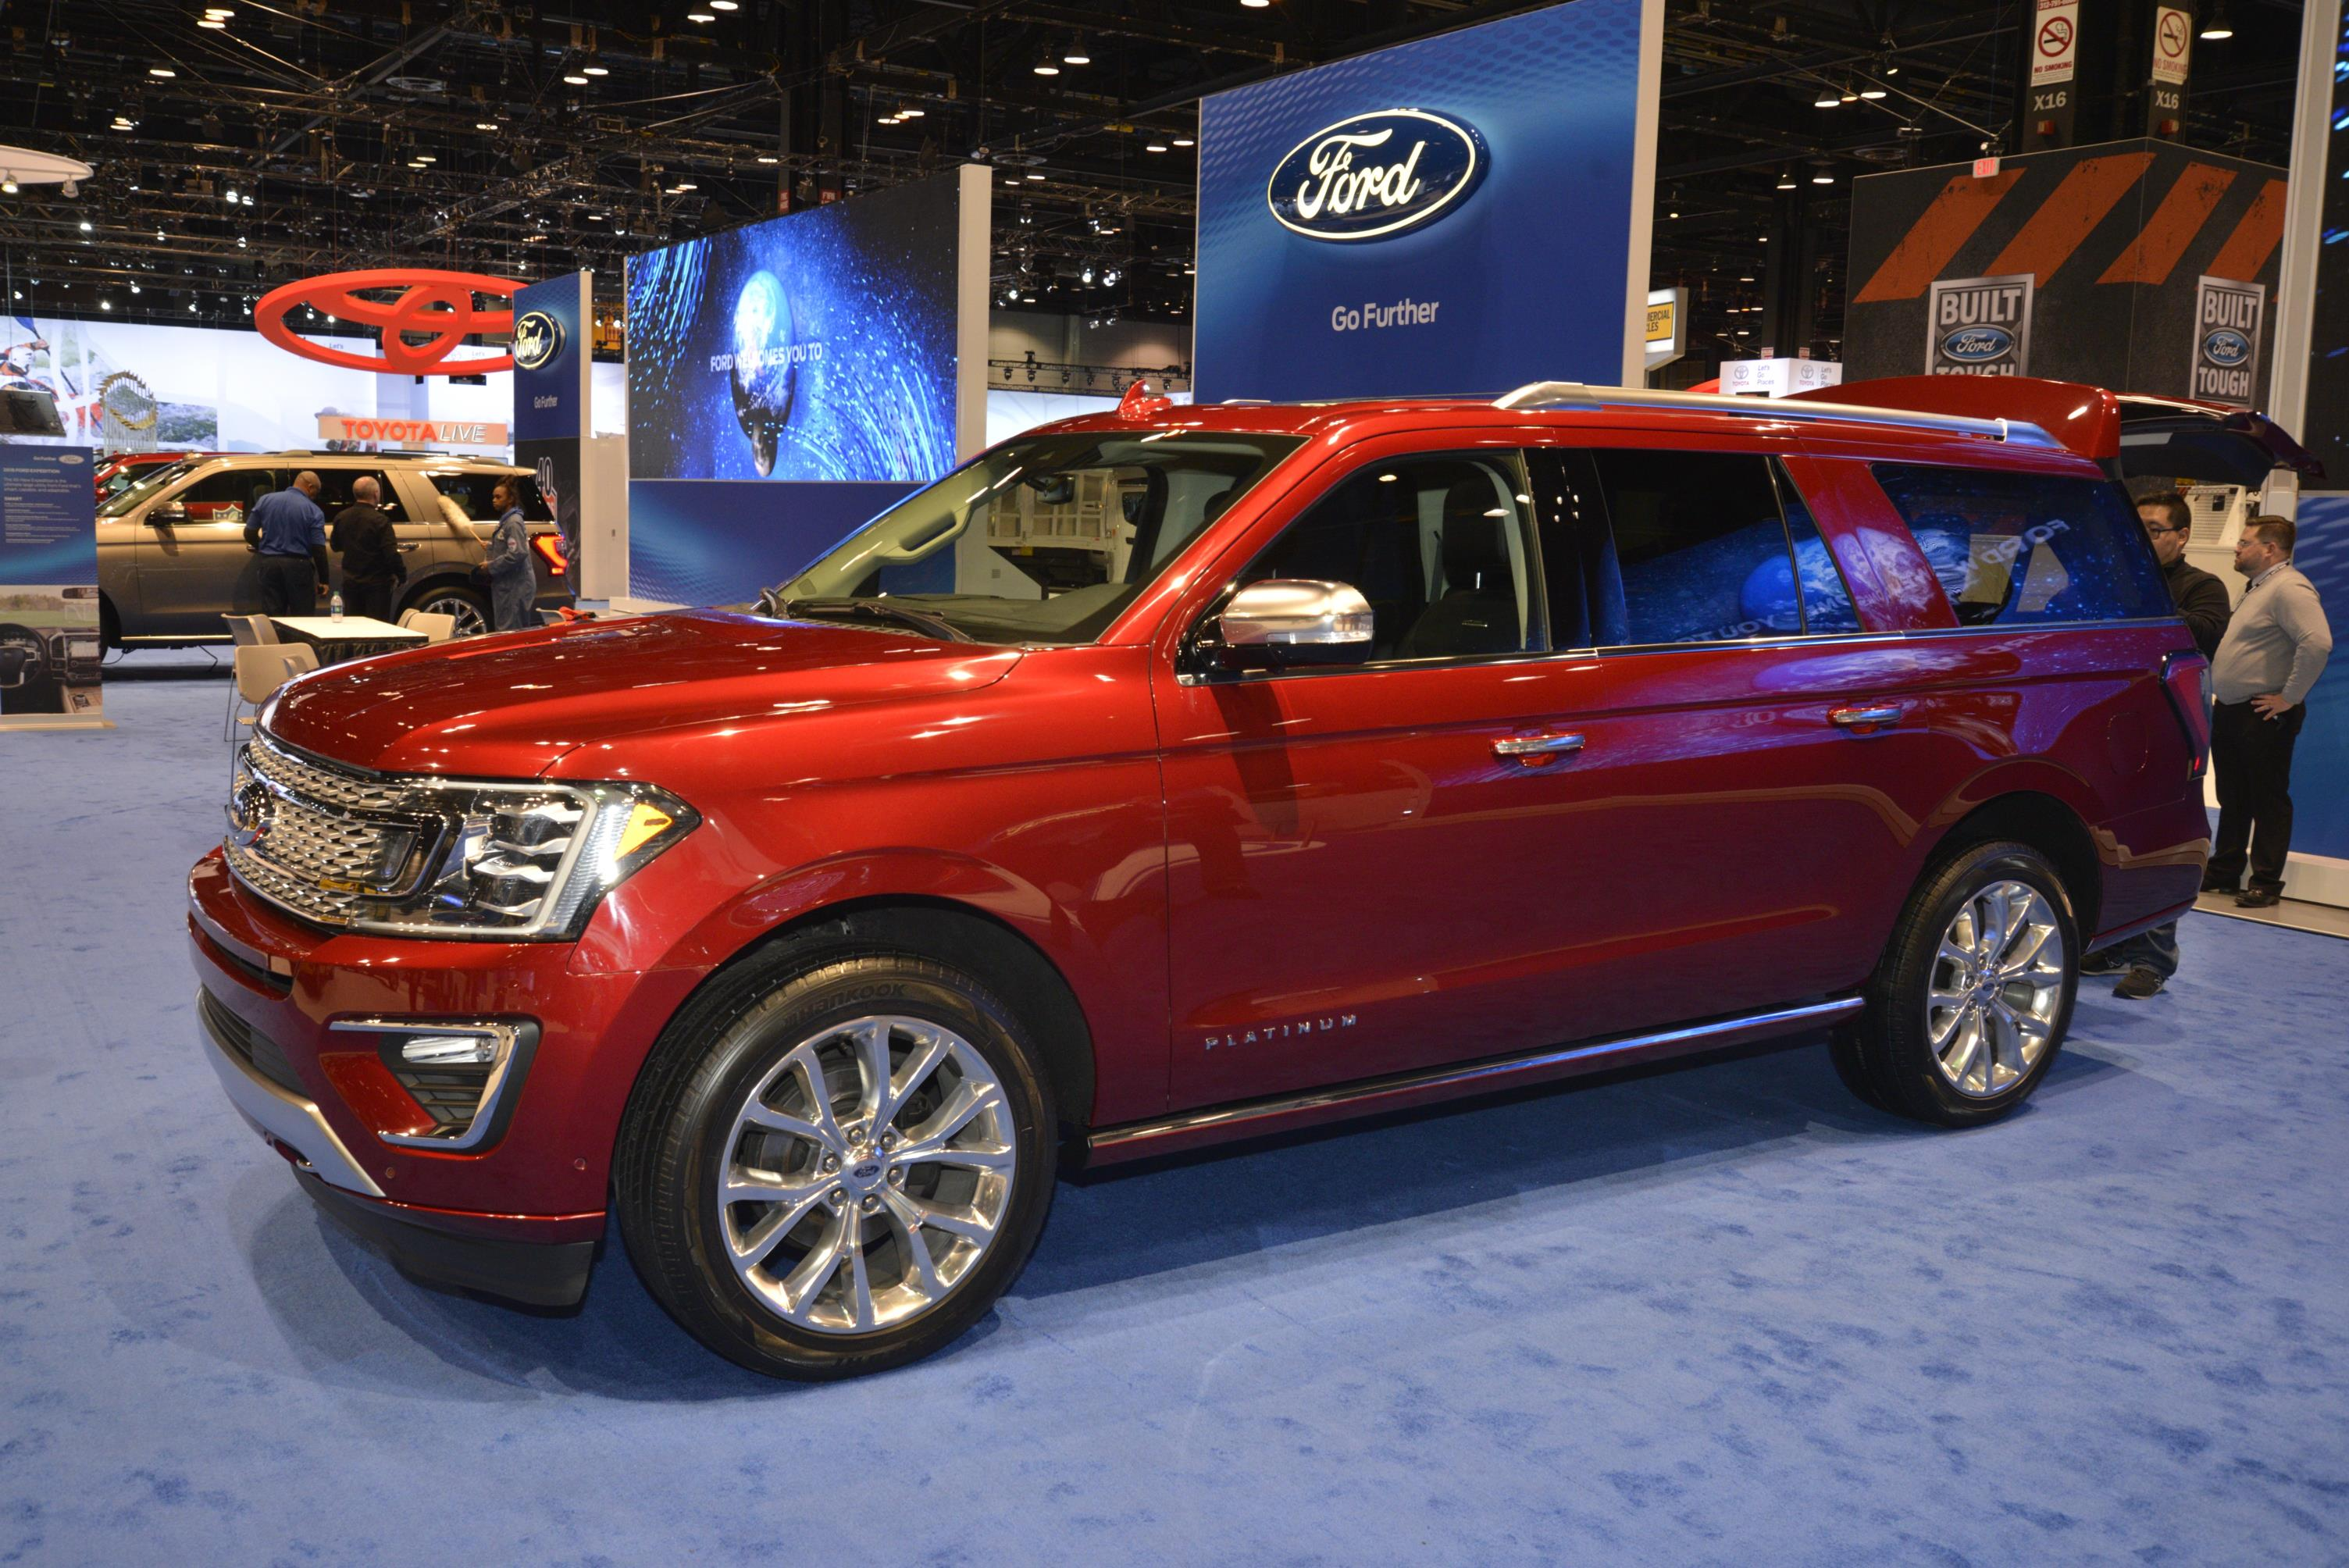 2018 Expedition is Ford s Range Rover at the Chicago Auto Show